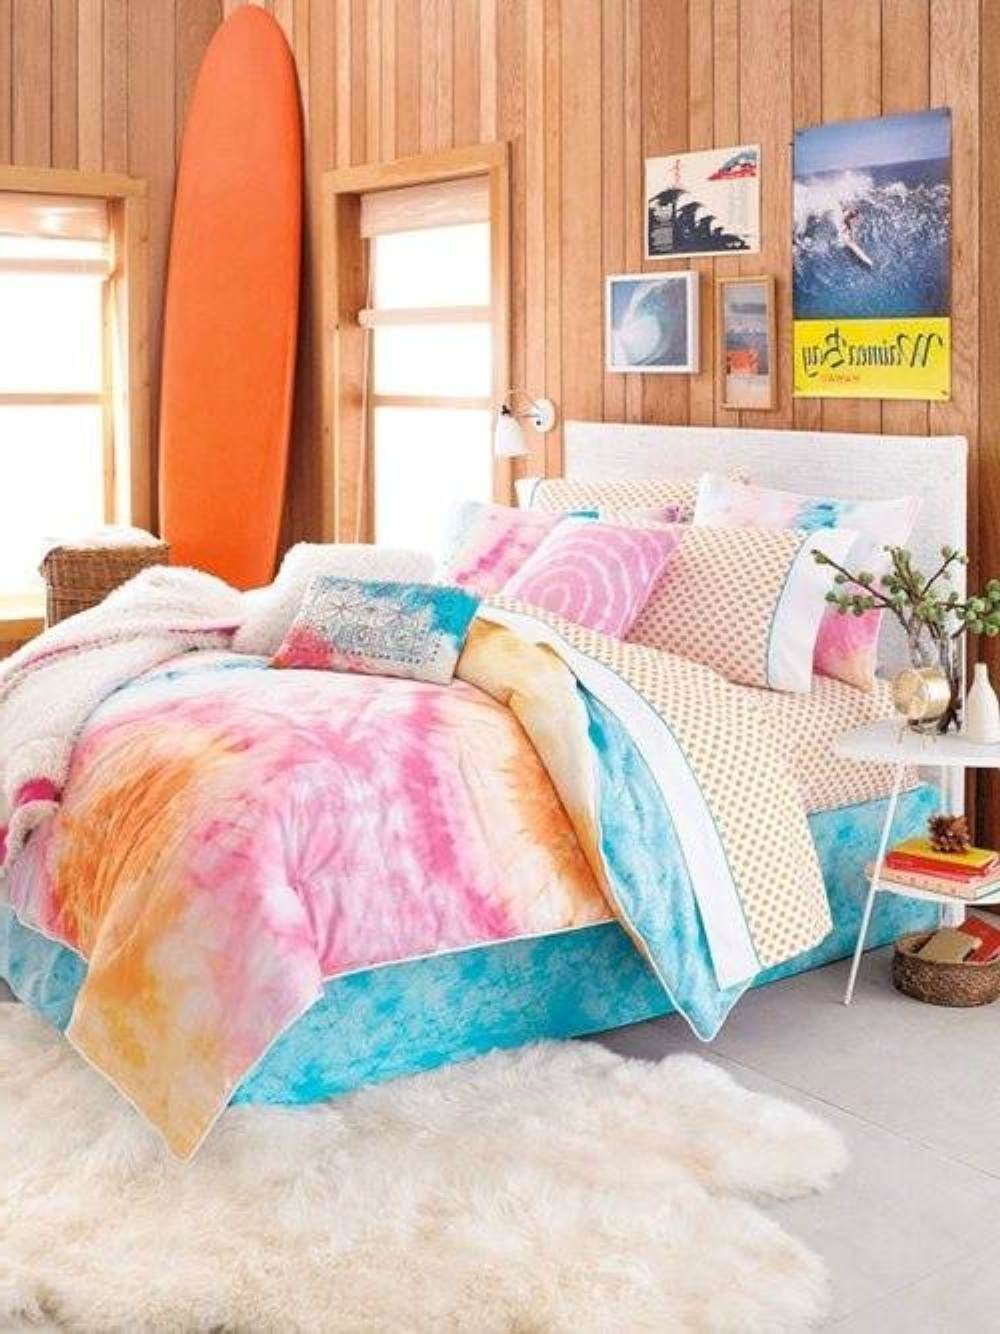 Decorating Ideas: Cool Room For Teenagers : Cool Wooden Wall Teenagers Bedrooms Design With Colorful Bed Accessories On White Rug And Simply White Bedside Table With Orange Surfboard And Wall Decor